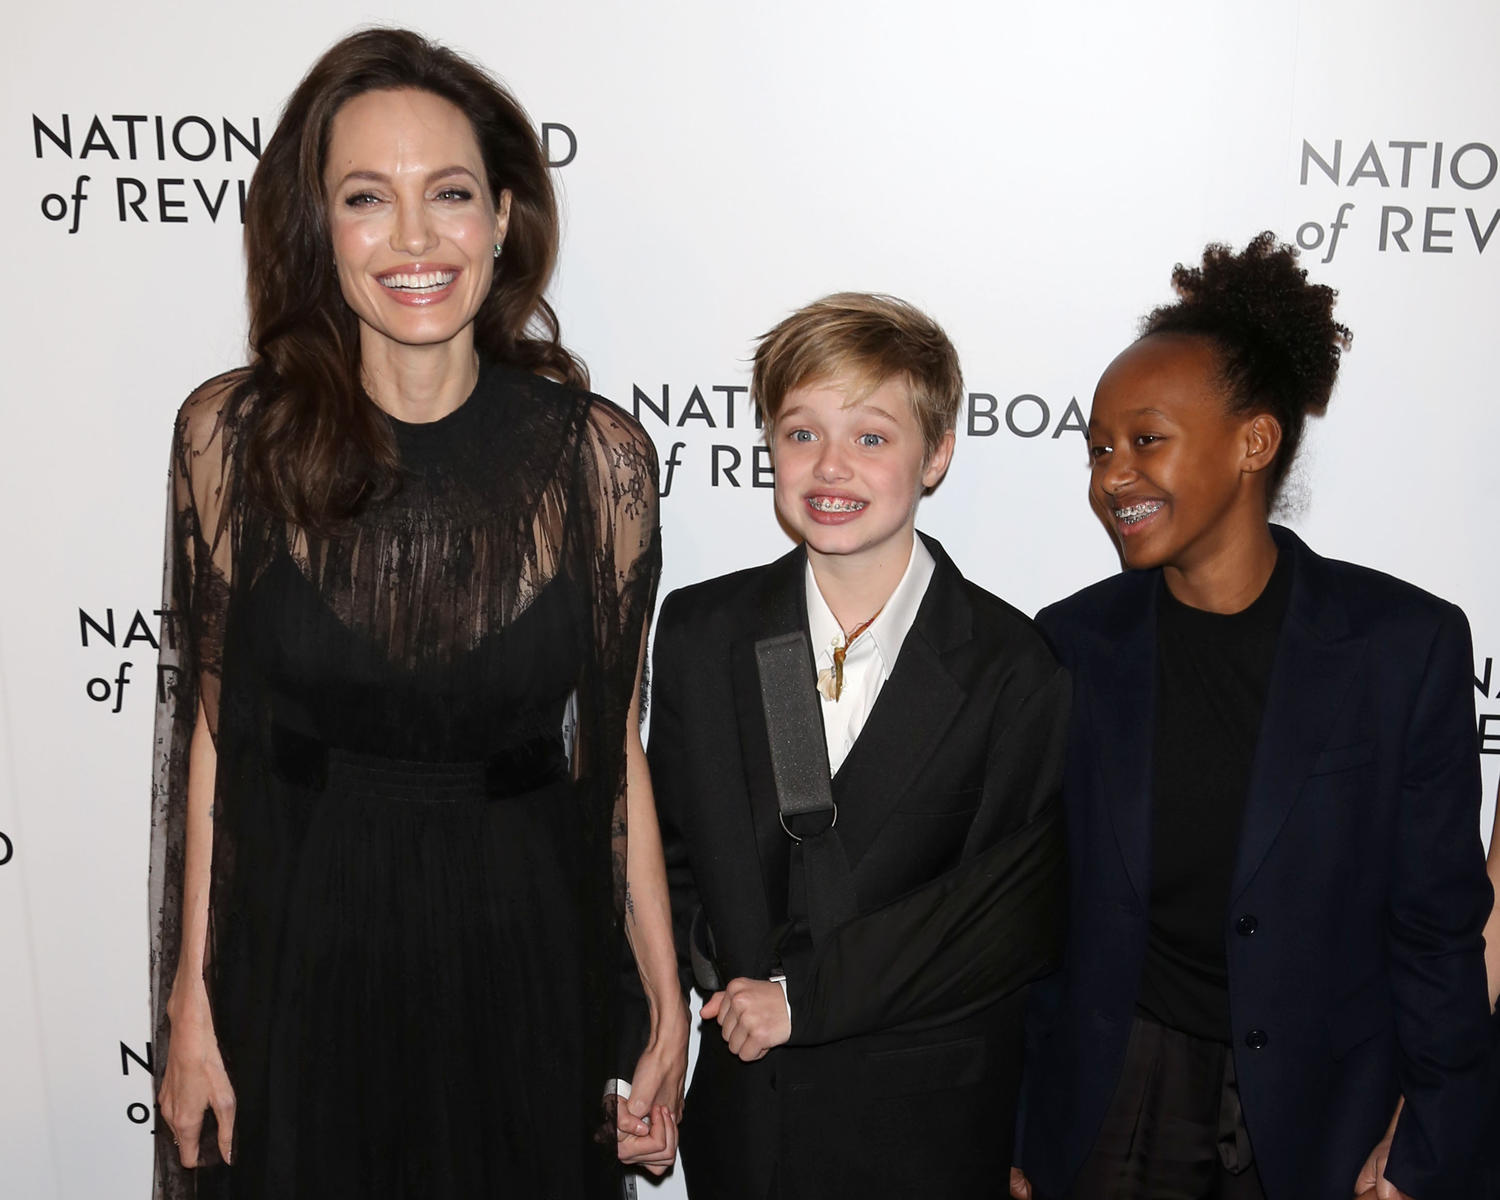 Angelina Jolie and Children Shiloh and Zahara Jolie-Pitt